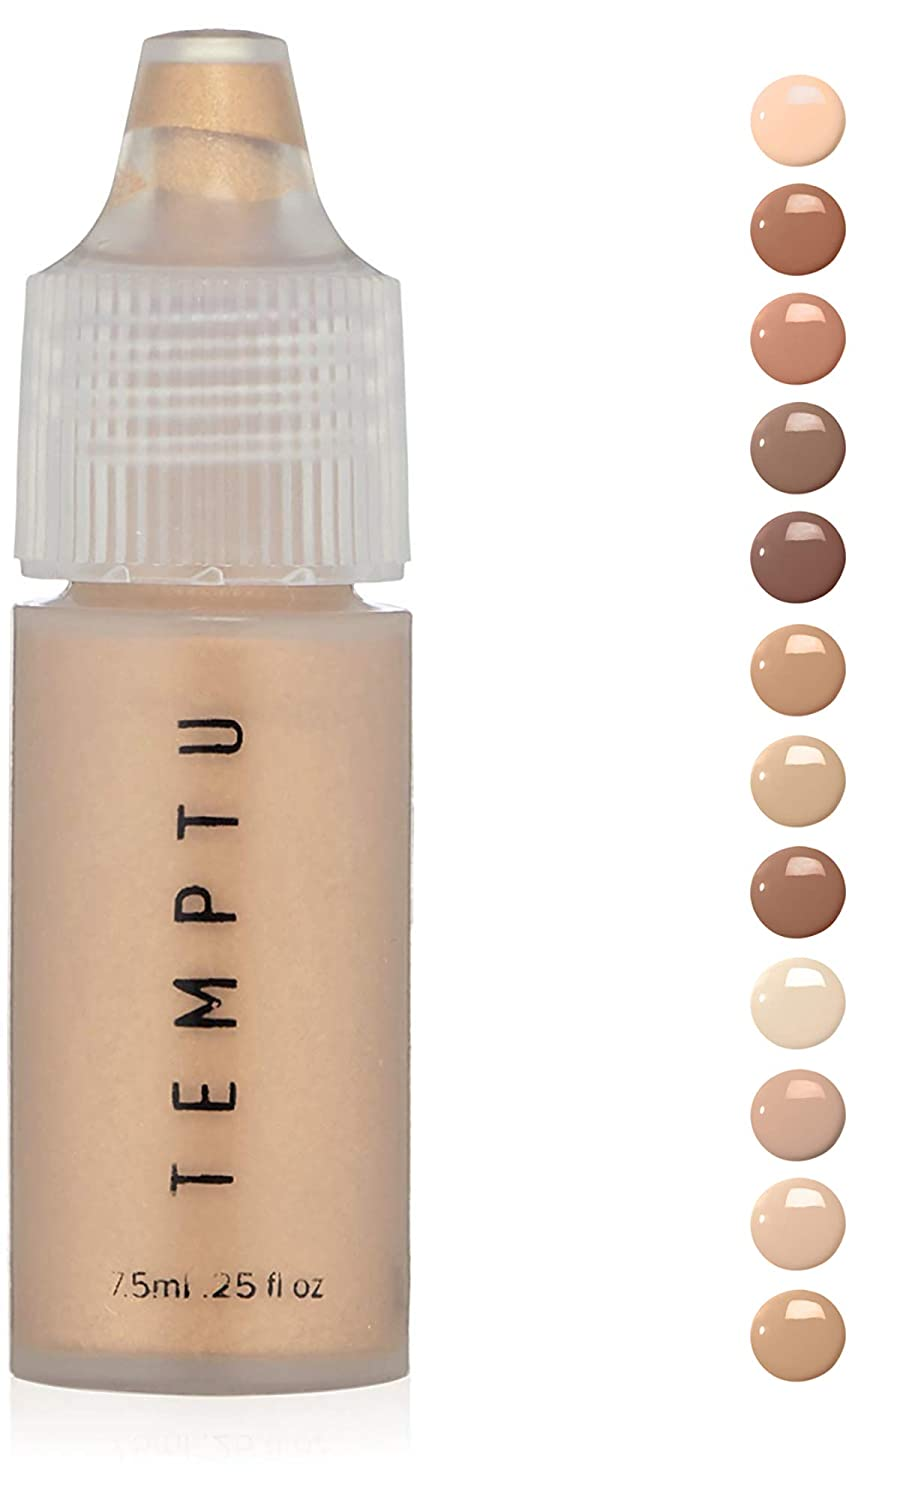 Temptu S/B Silicone-Based Airbrush Foundation